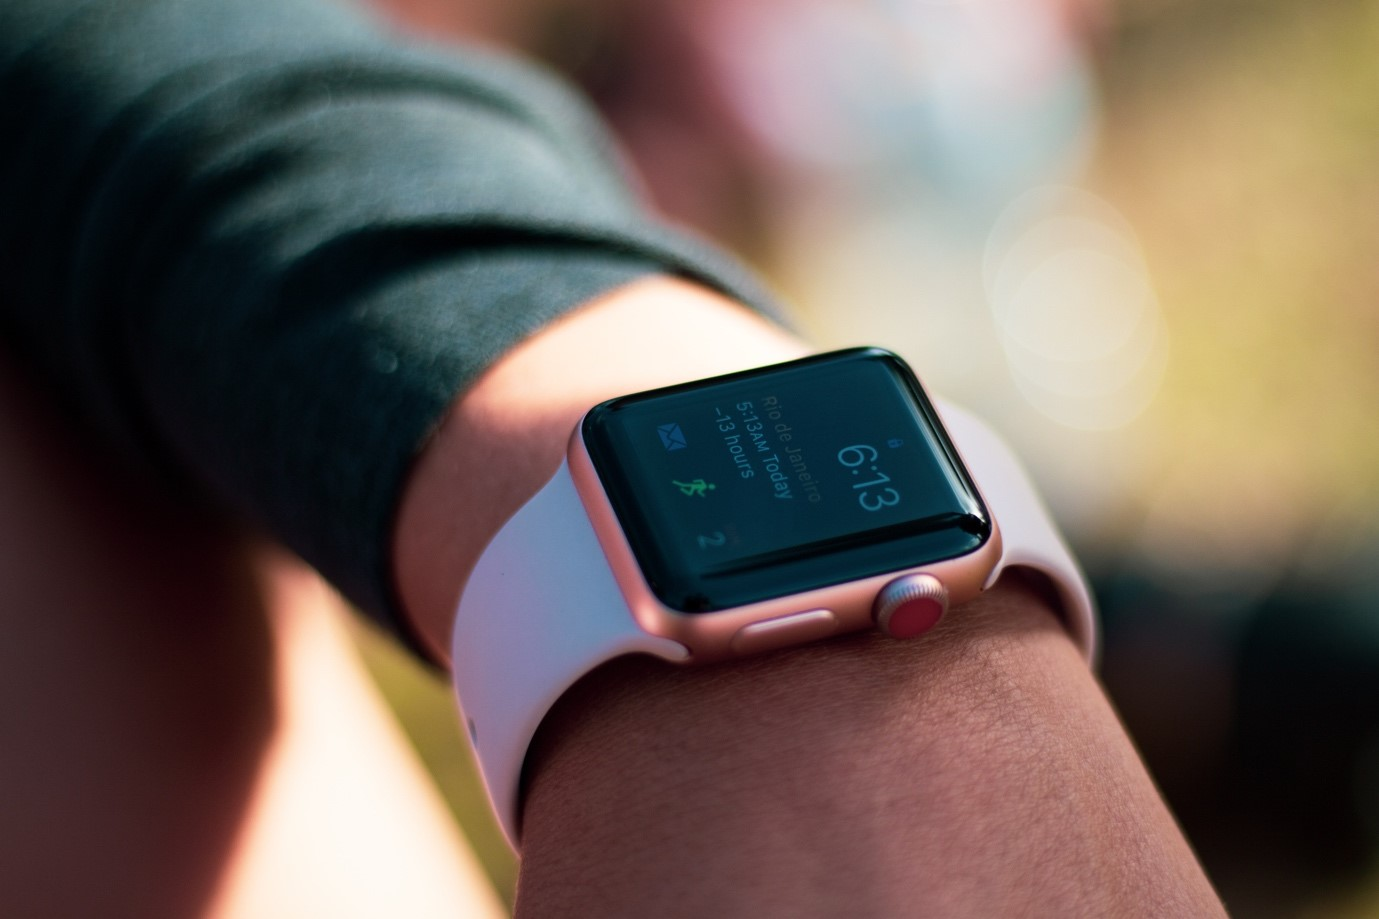 Fitness technology is transforming the industry